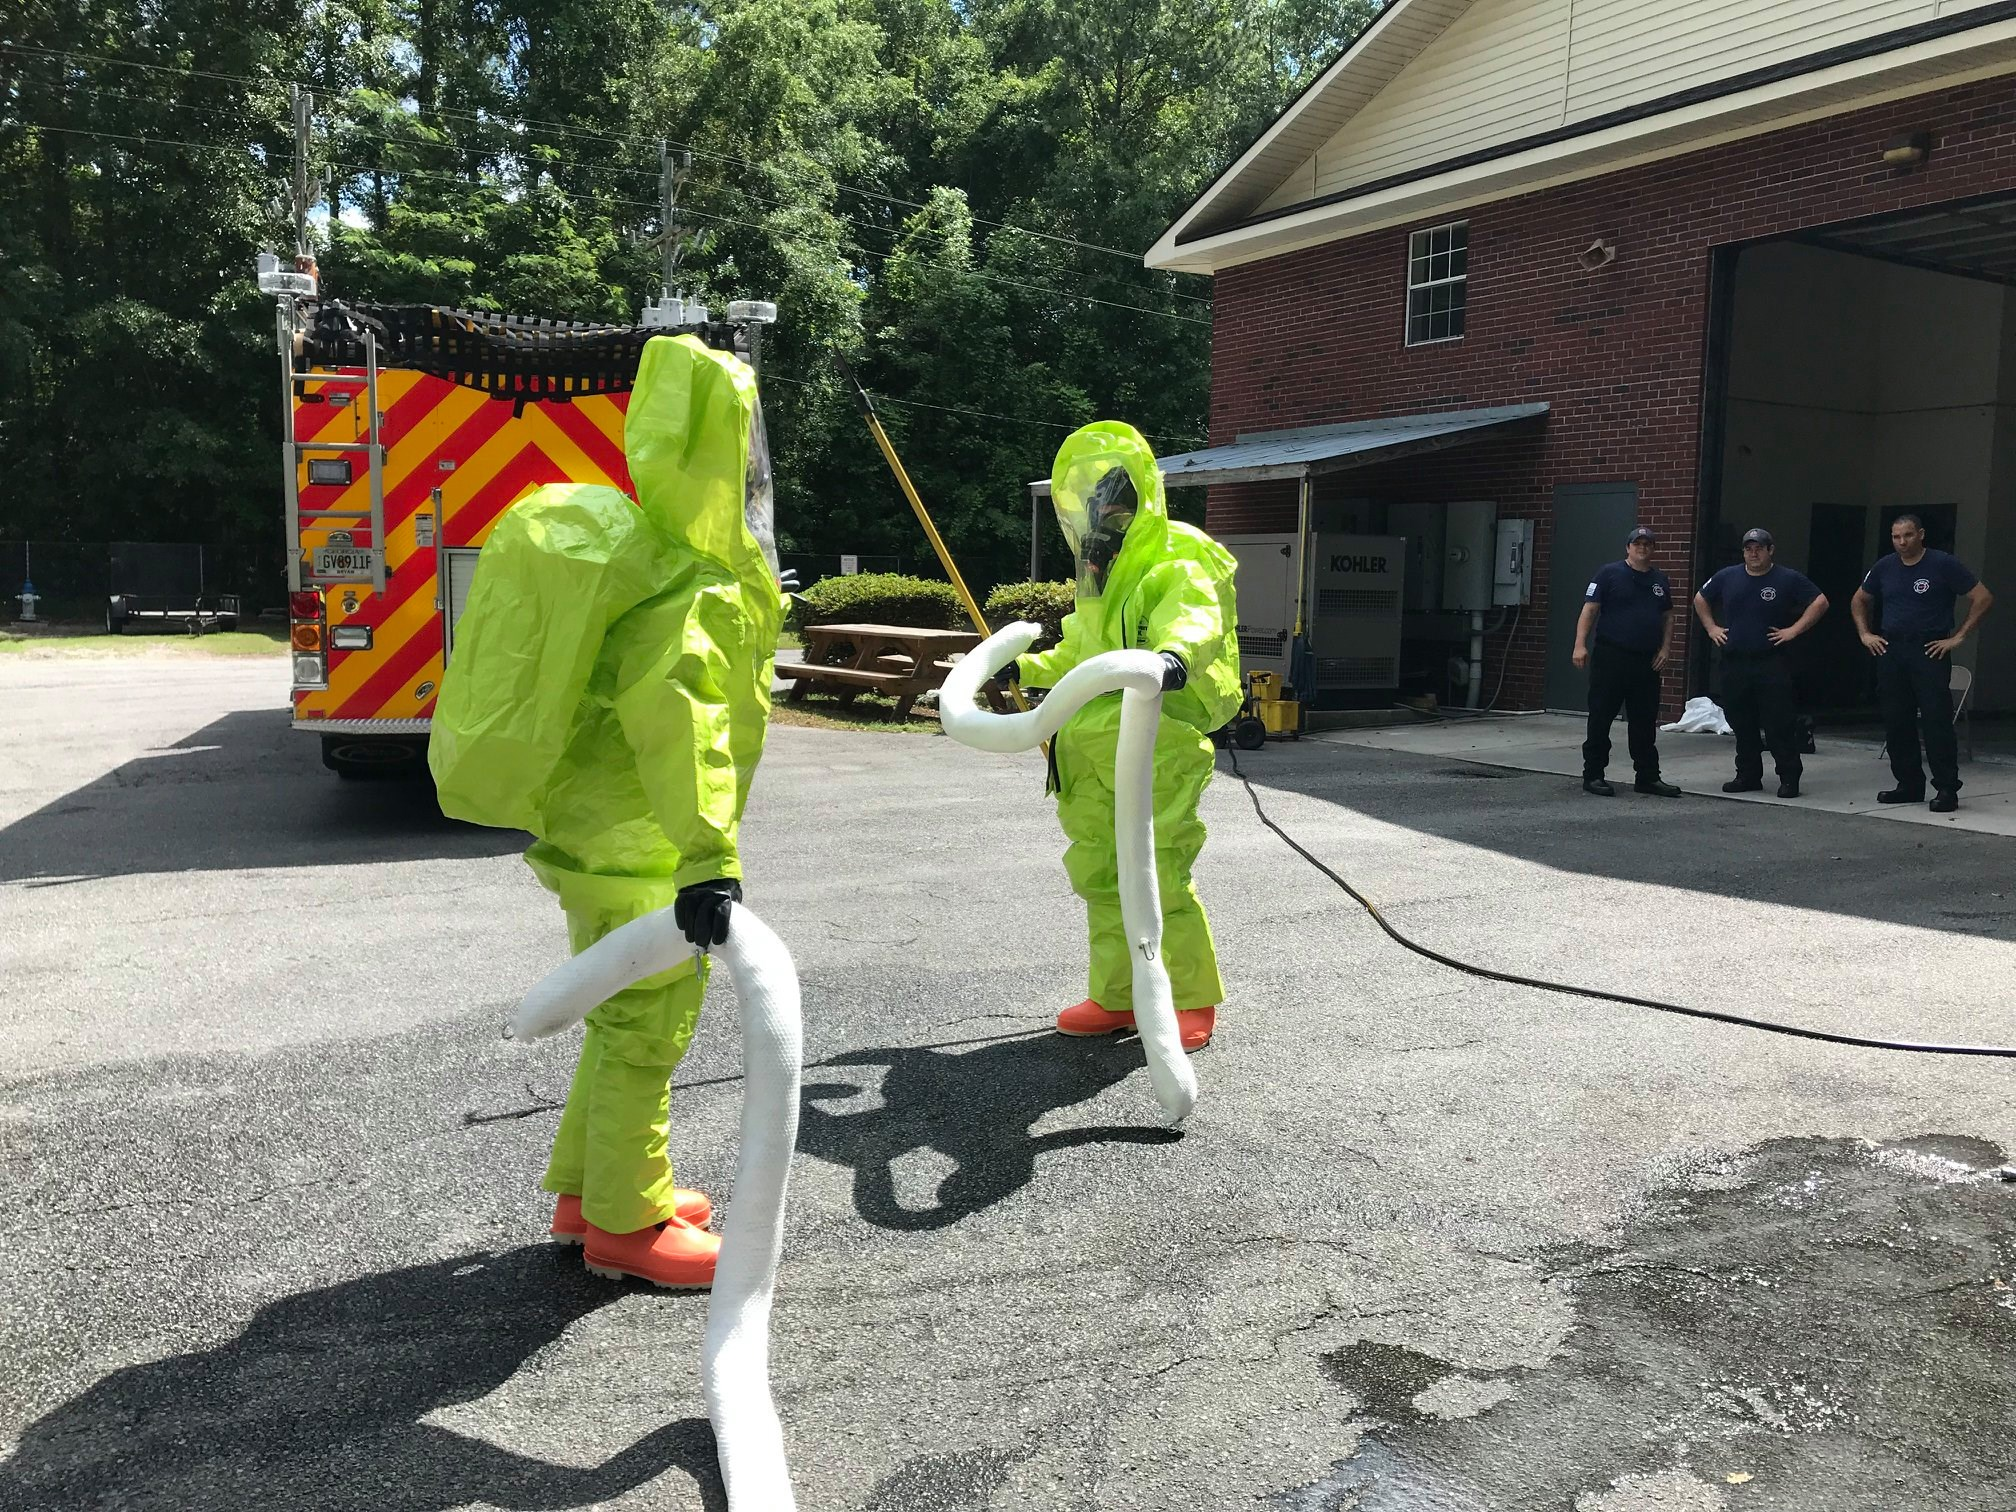 Two firefighters in hazmat suits holding a white tube